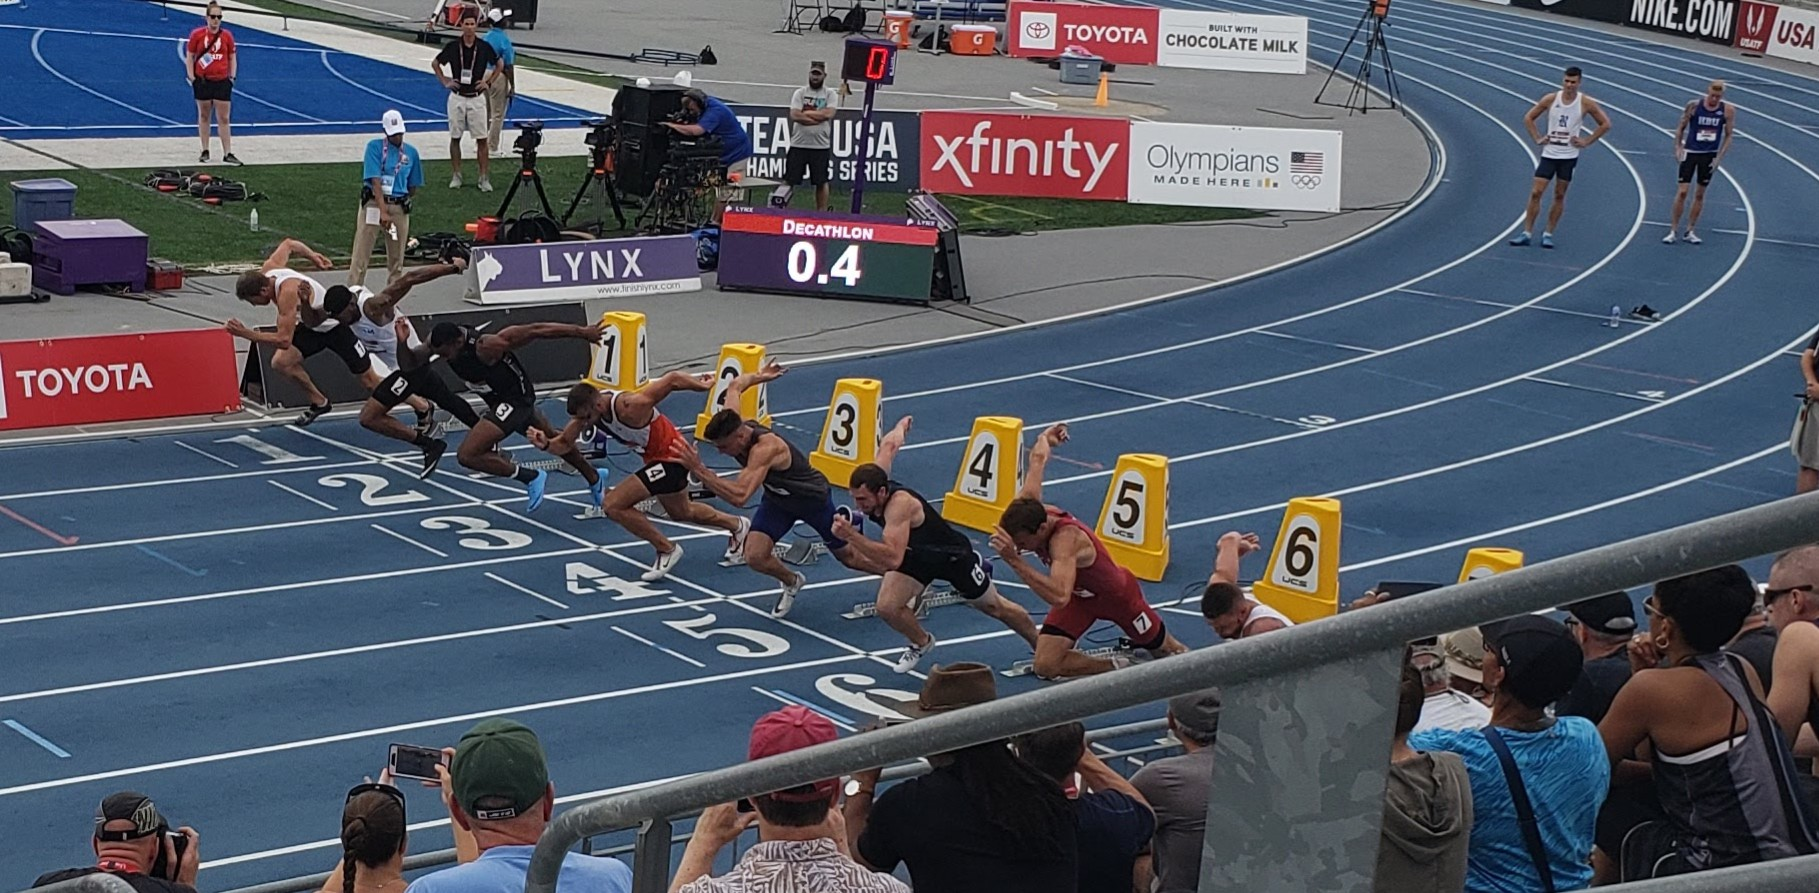 Start of the 100m dash (I'm in lane 1)